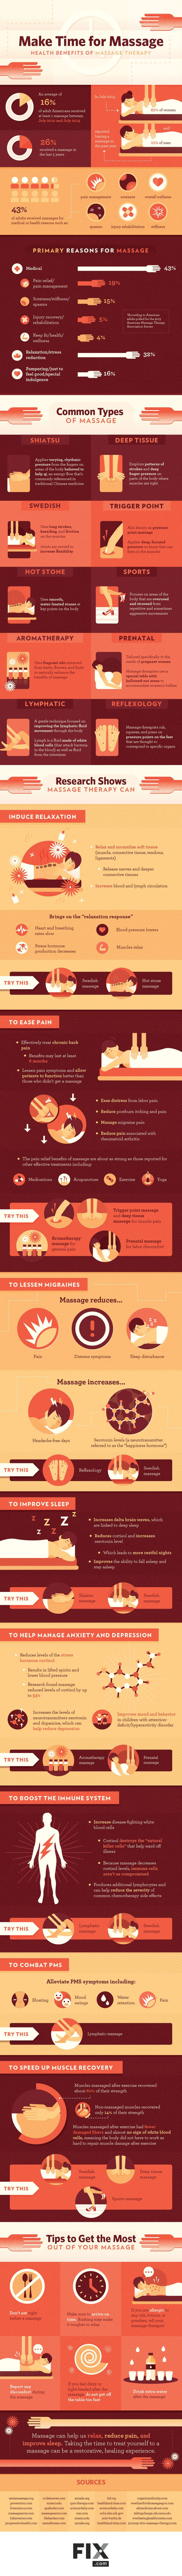 Learn how getting that regular massage will be beneficial to your mental and physical wellbeing #massage #health